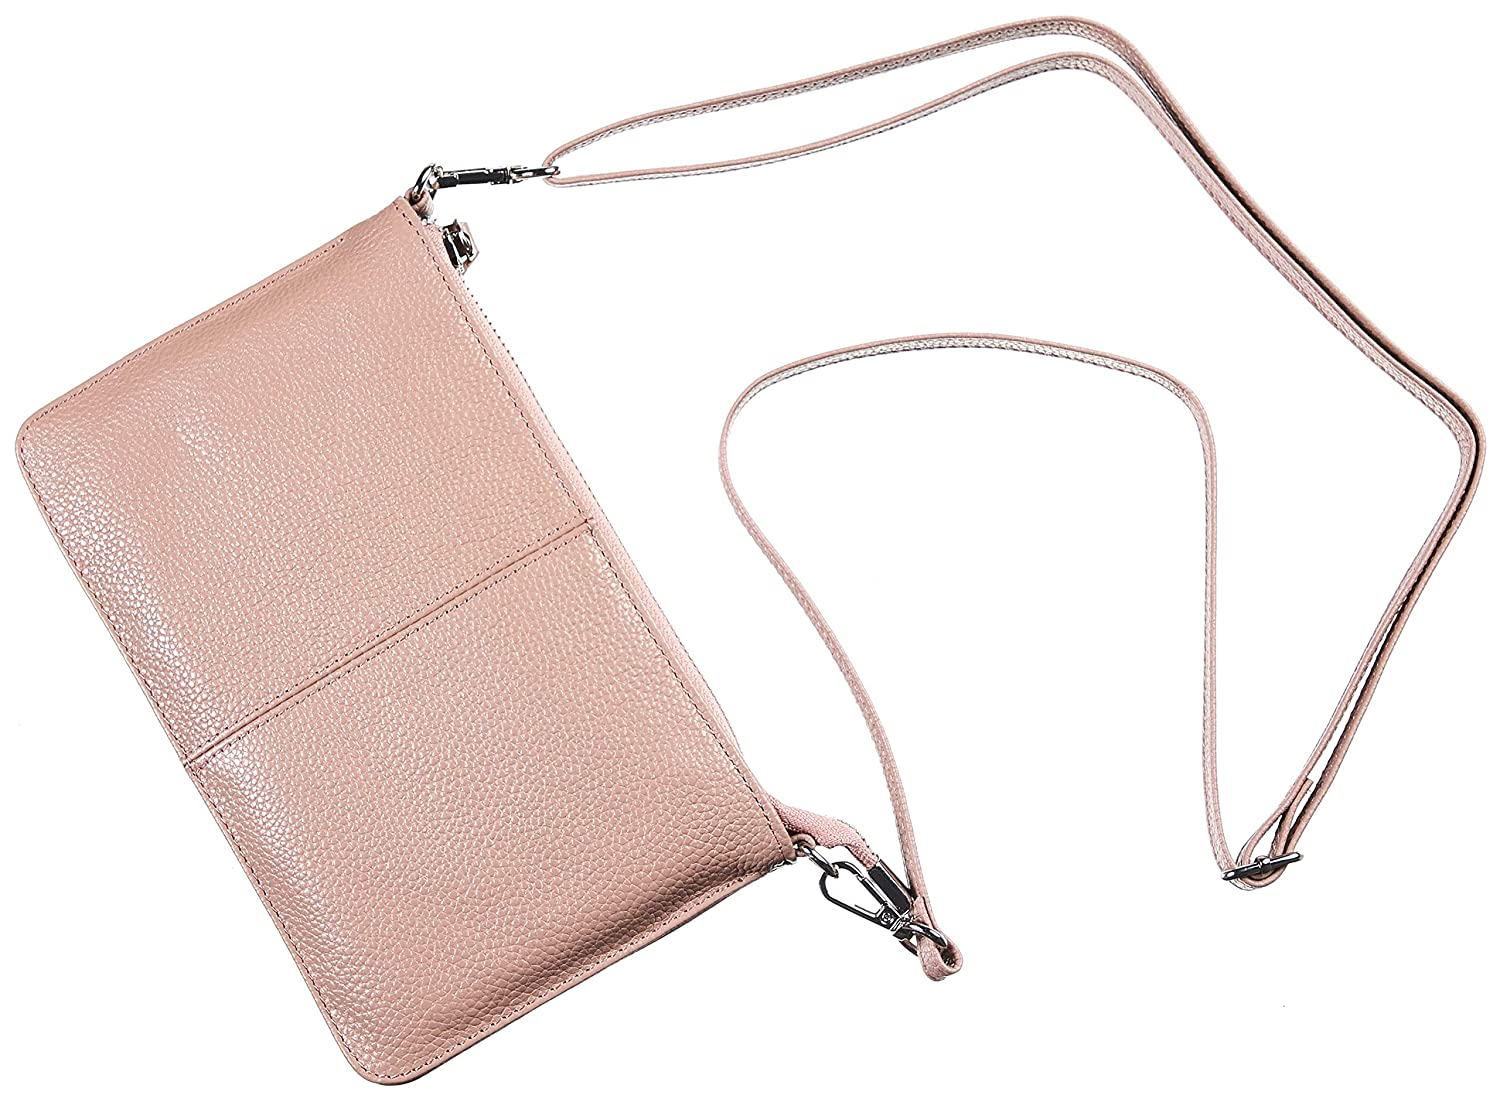 Gostwo Genuine Leather Small Shoulder Bag Wristlet Clutch Purse with Card Slots